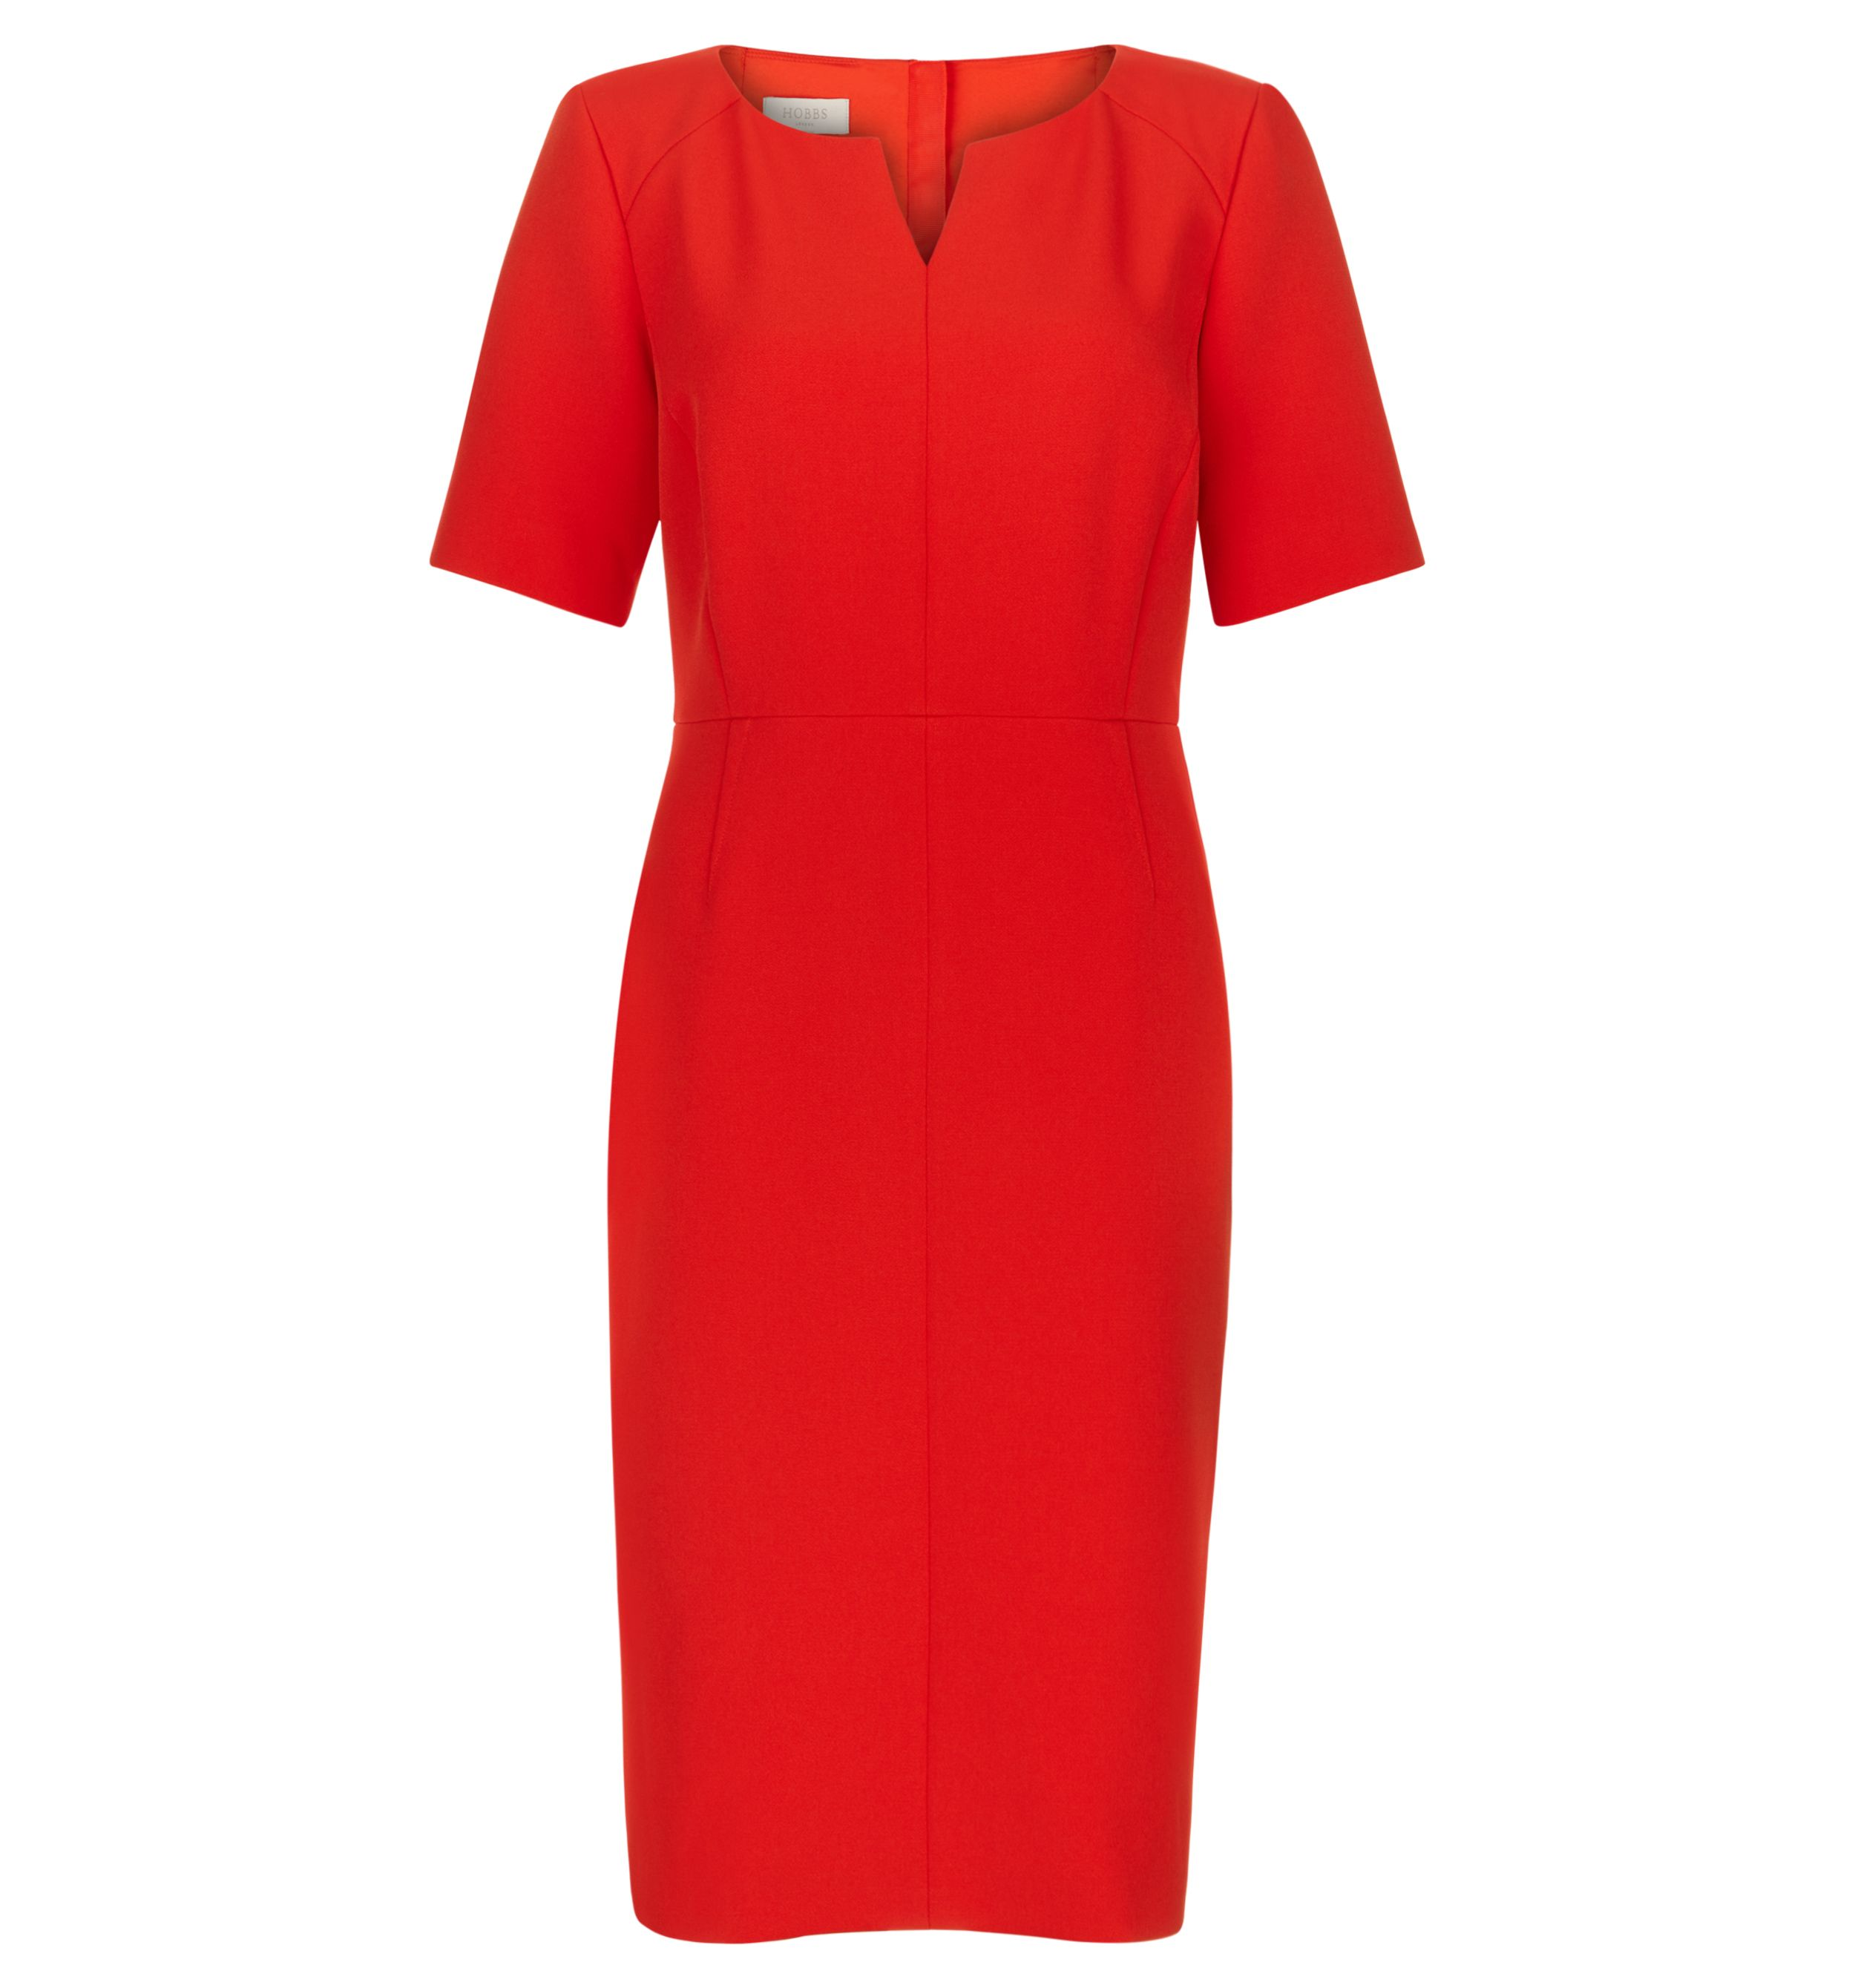 Hobbs Ponte Eimear Dress, Orange